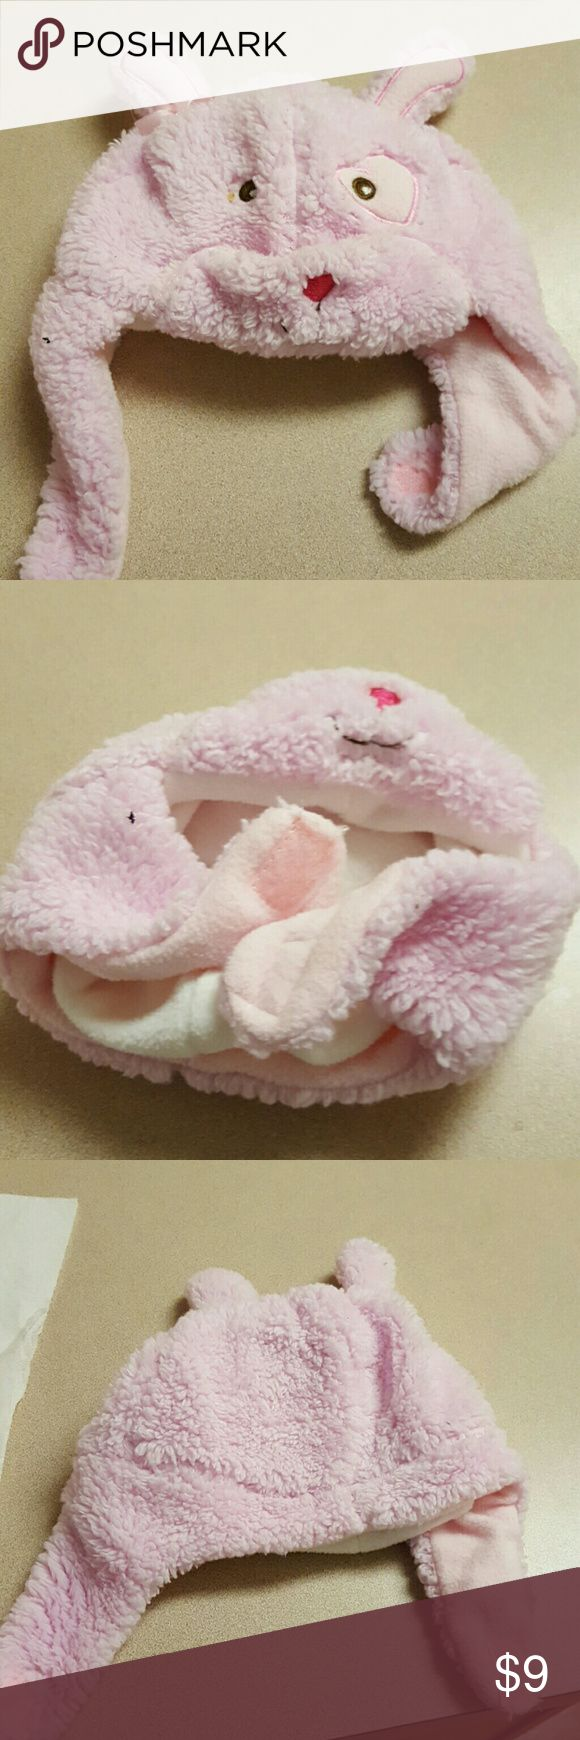 Infant Girls Winter Hat Cute pink winter hat with fleece lining. Too small for my daughter. Velcro closure. Accessories Hats